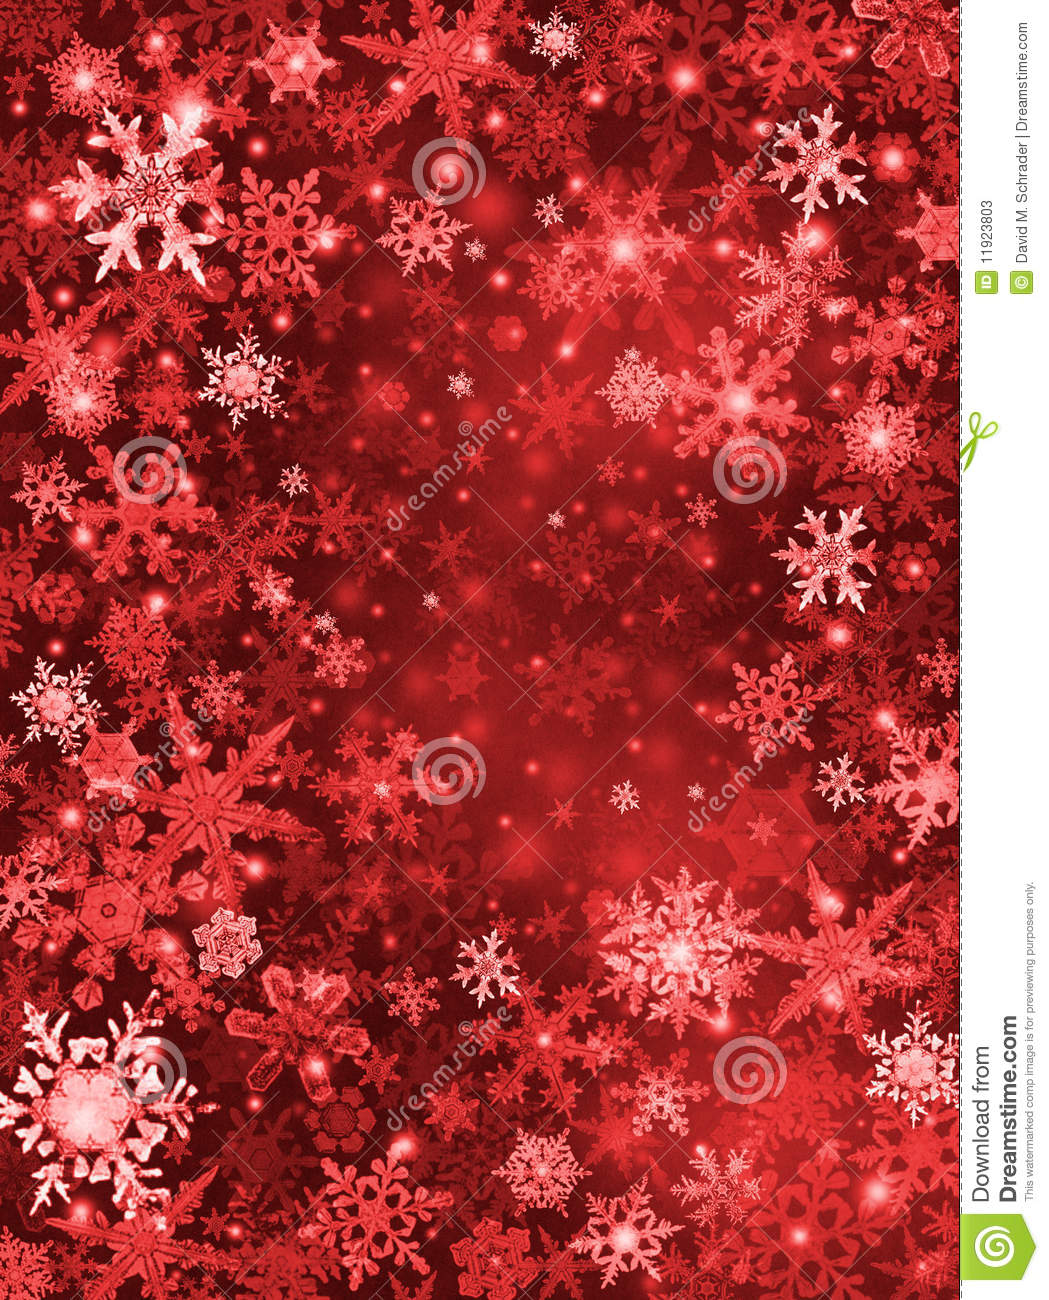 red snow christmas background - photo #18